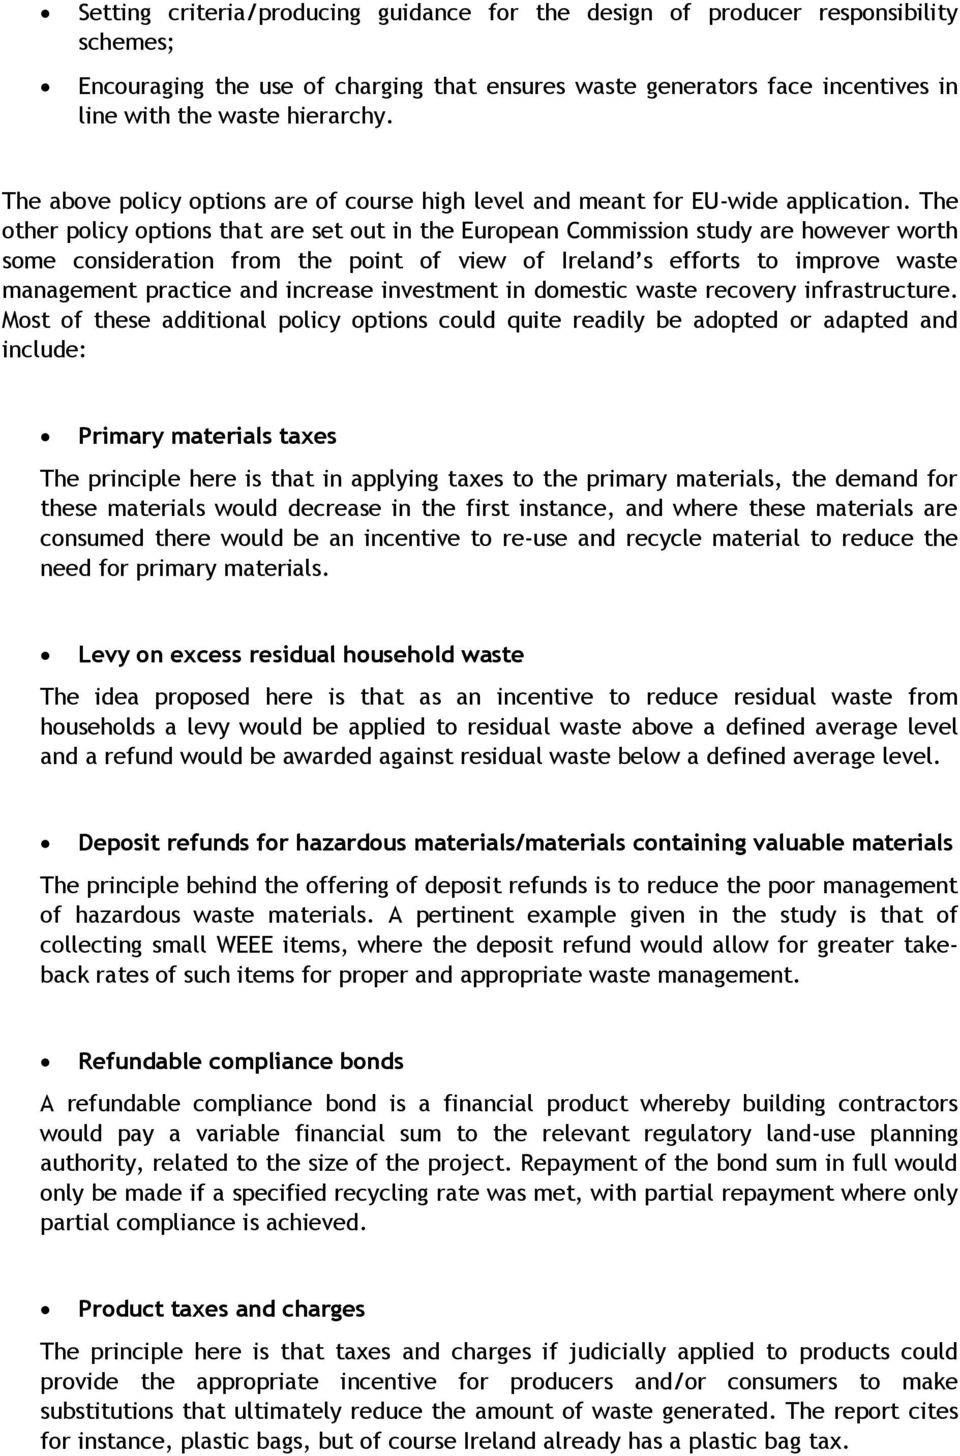 The other policy options that are set out in the European Commission study are however worth some consideration from the point of view of Ireland s efforts to improve waste management practice and